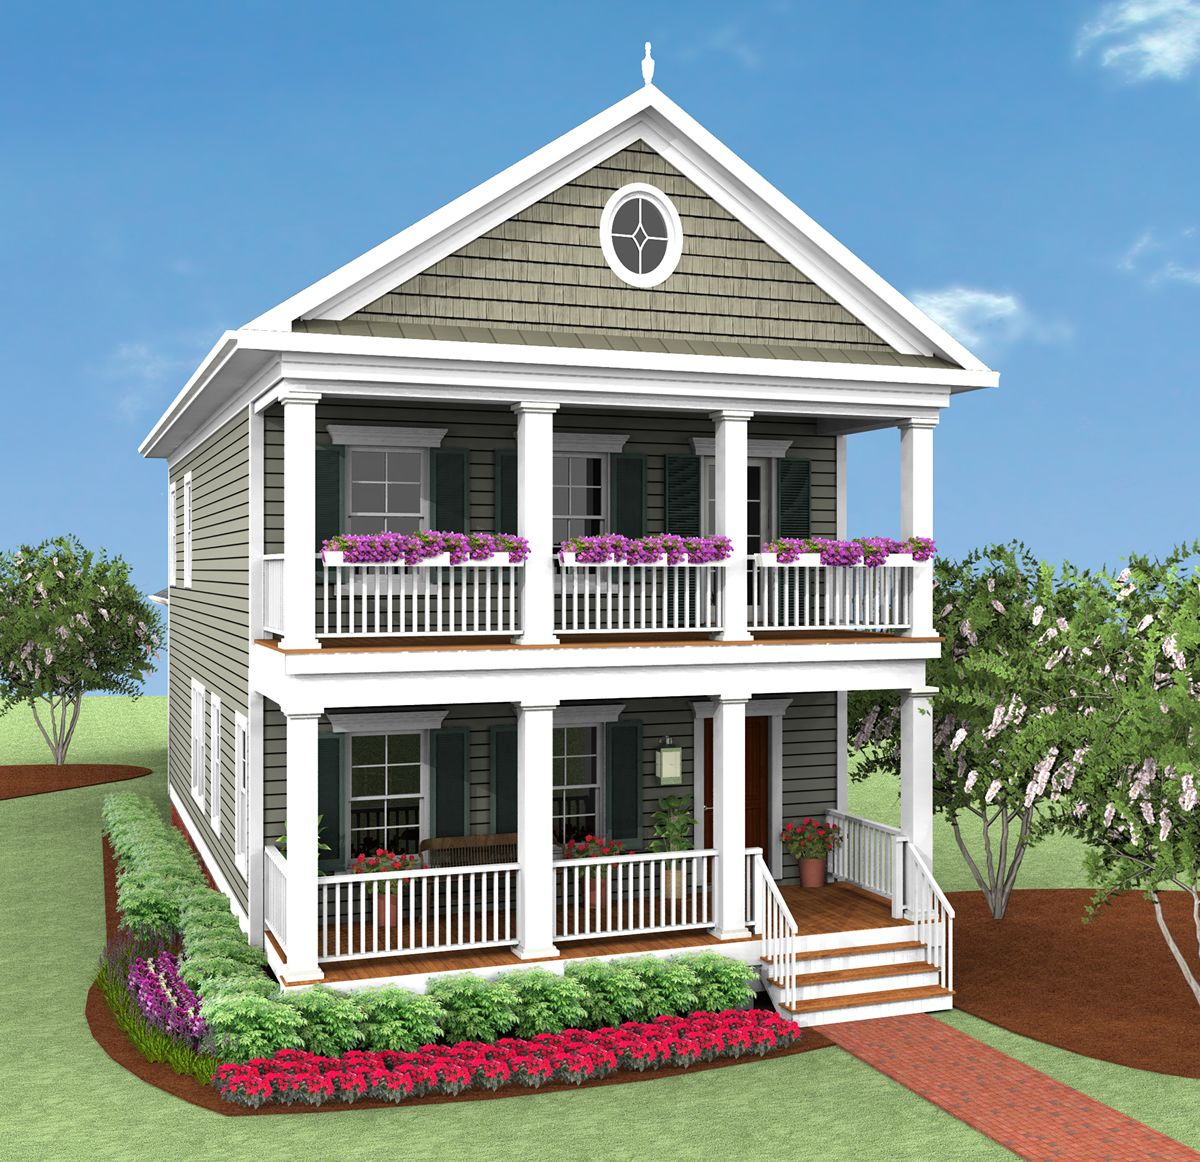 Chatham Legacy Covell Communities Porch House Plans Beach House Plans House With Balcony